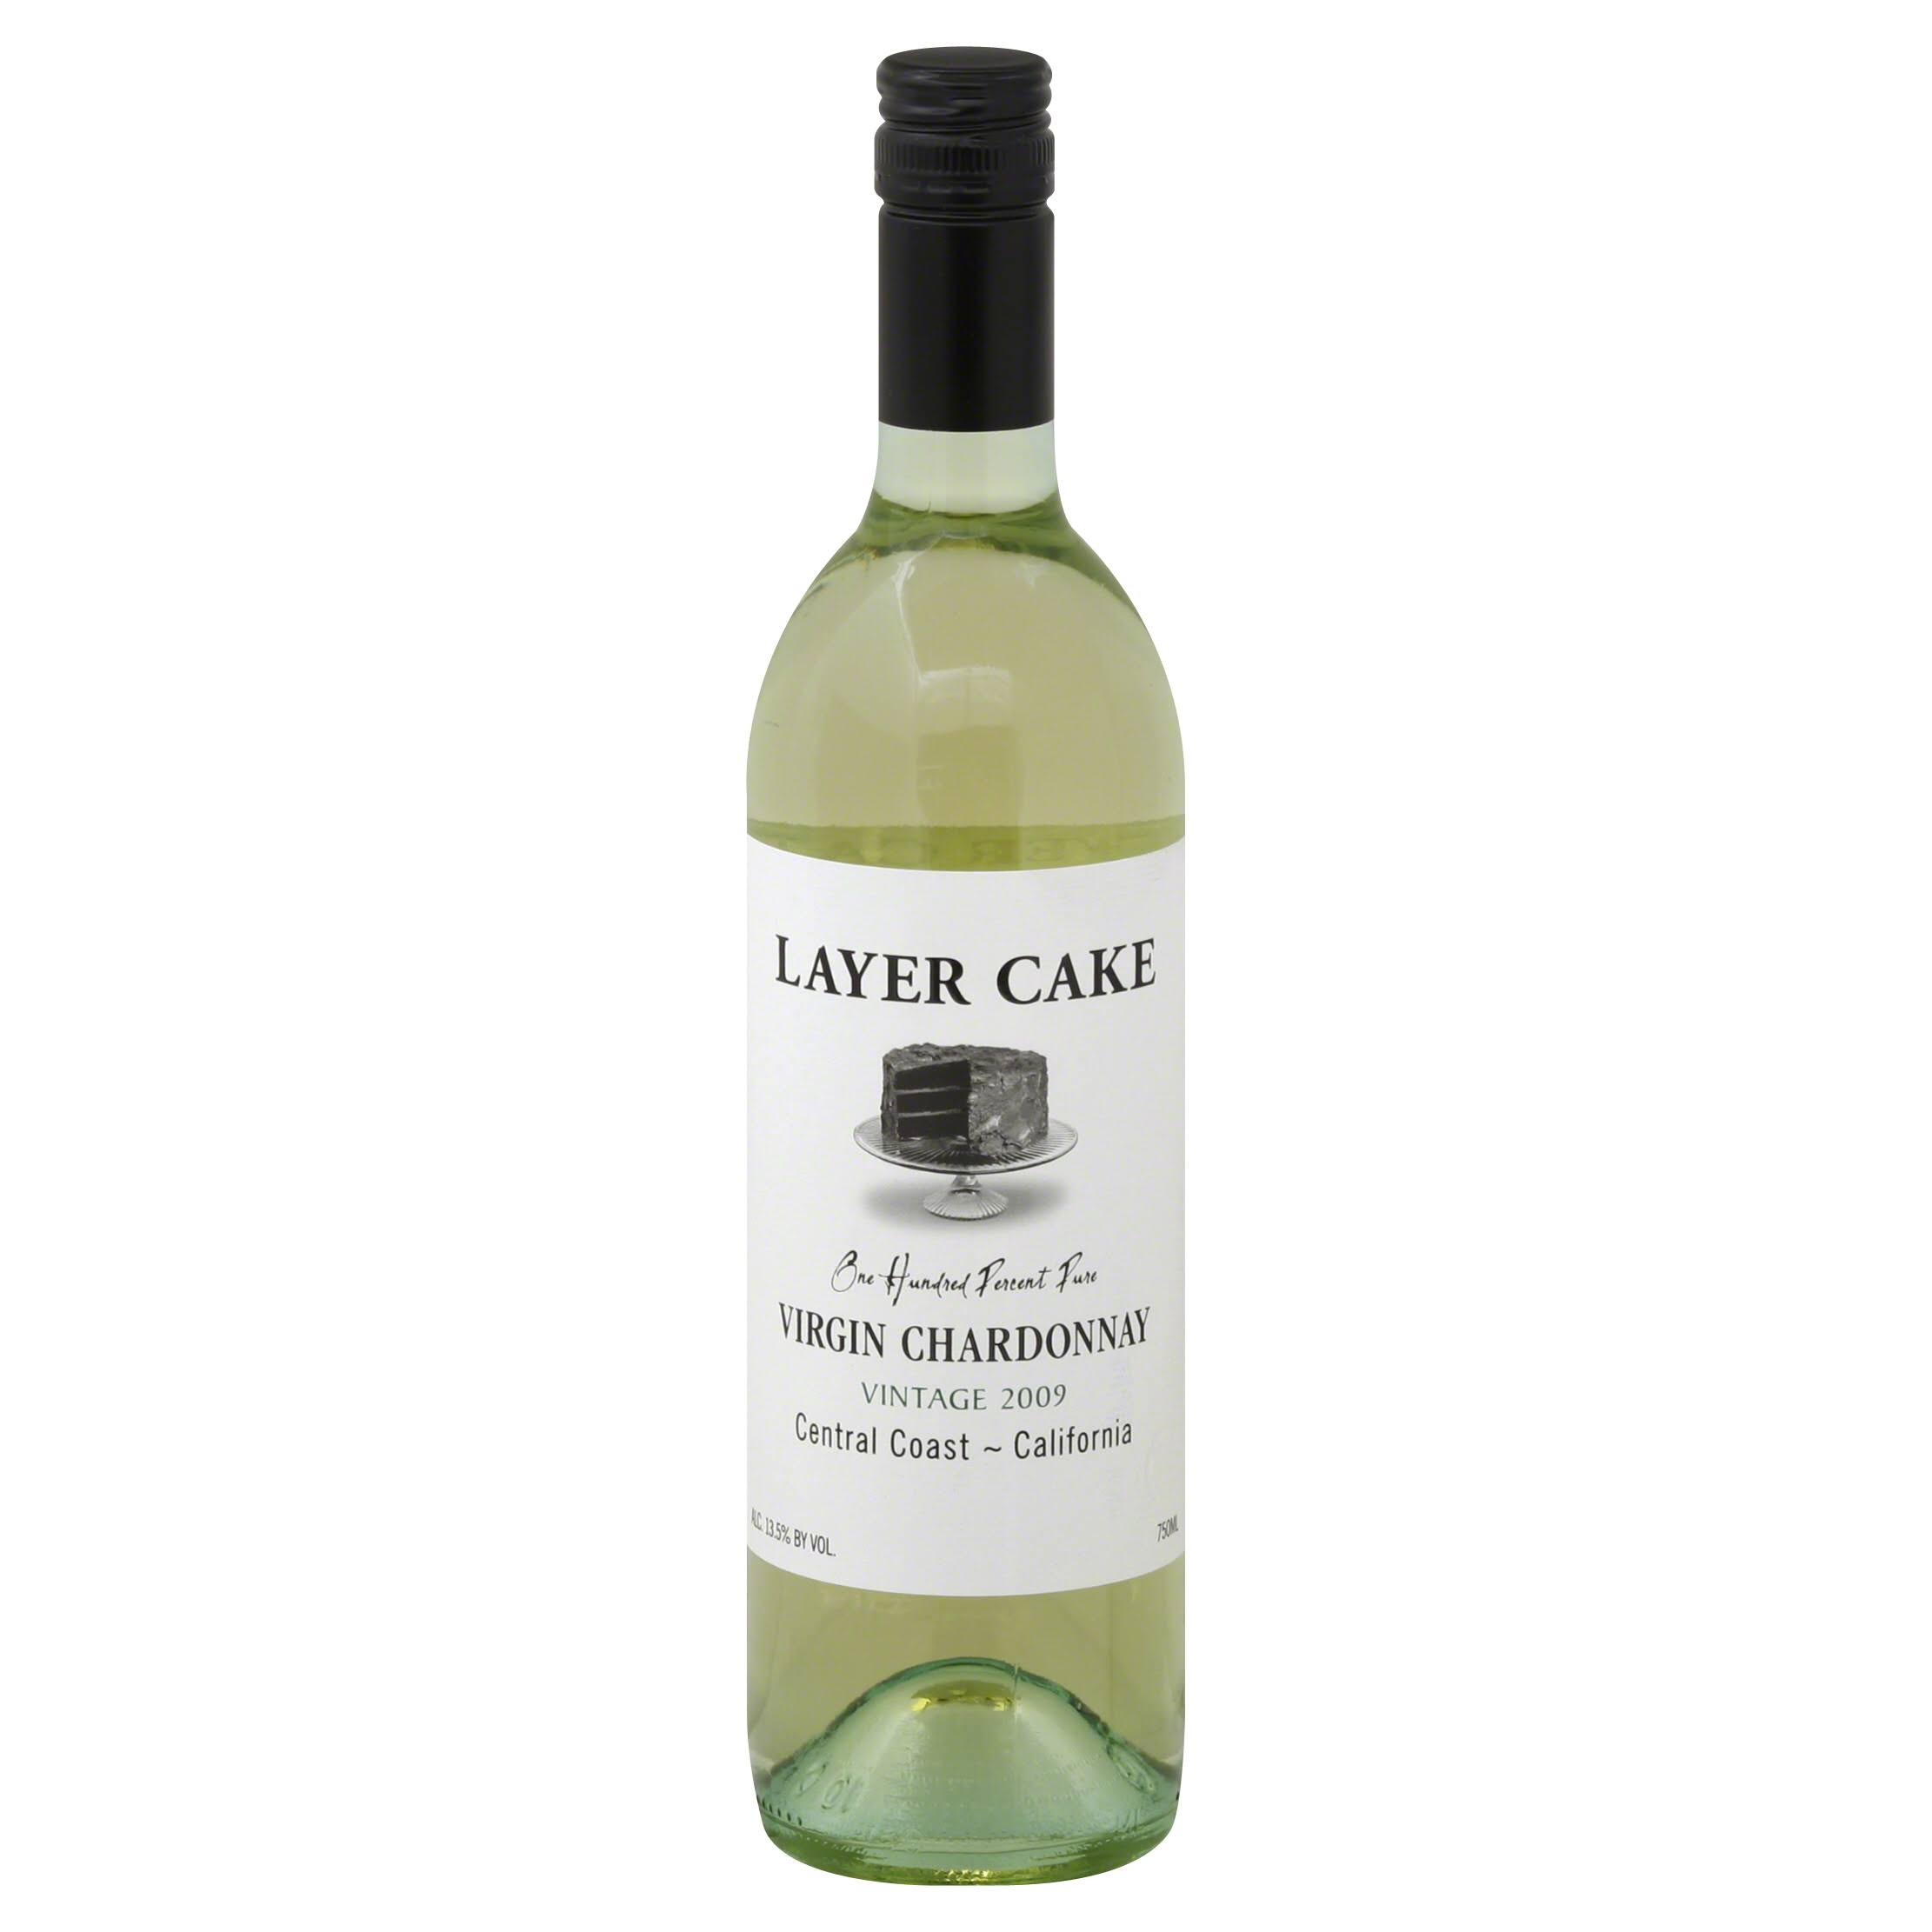 Layer Cake Virgin Chardonnay - 2009, Central Coast